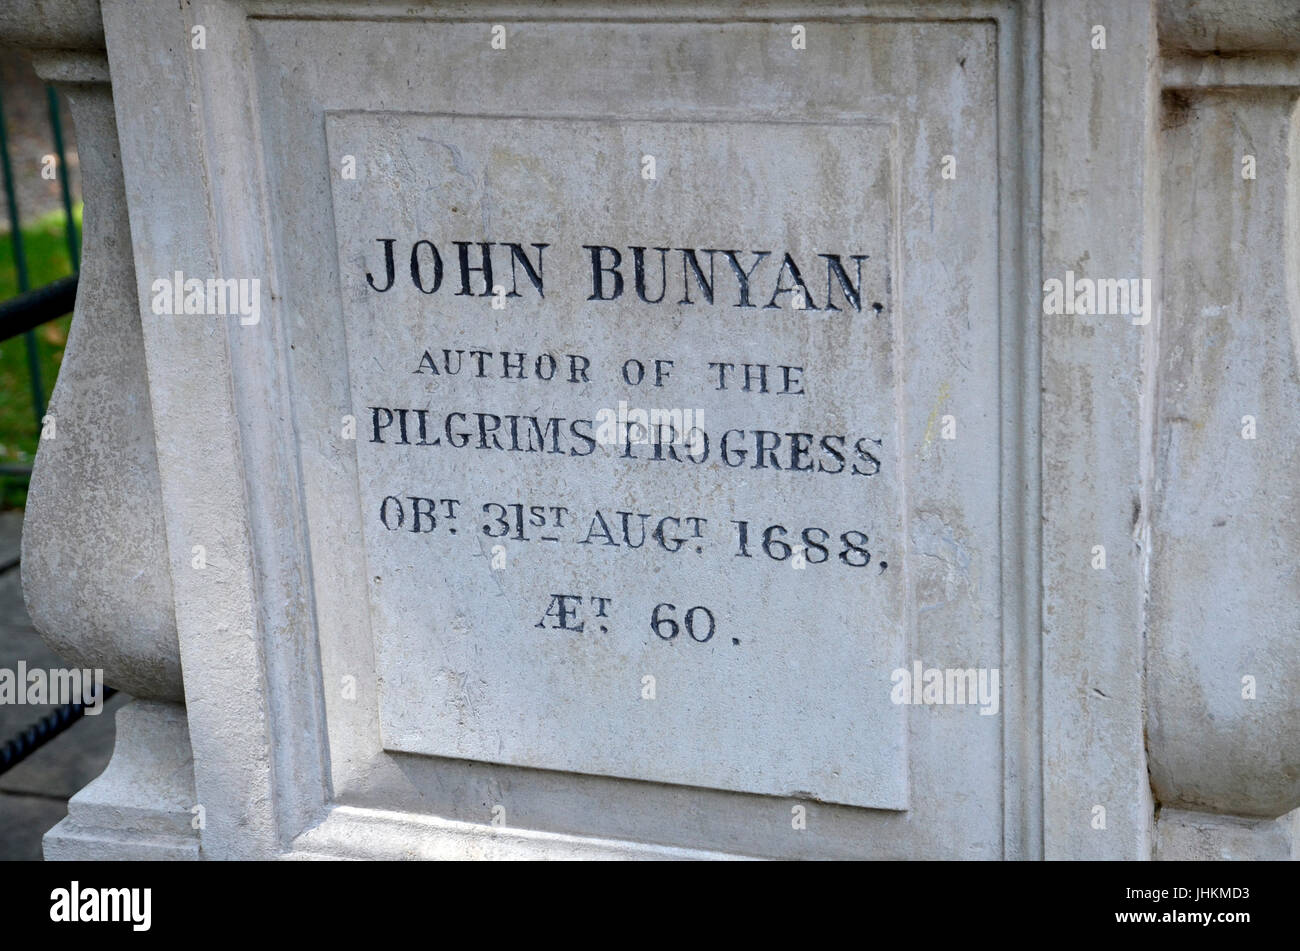 The gravestone of author and poet John Bunyan in Bunhill Fields Cemetary, Finsbury, London - Stock Image